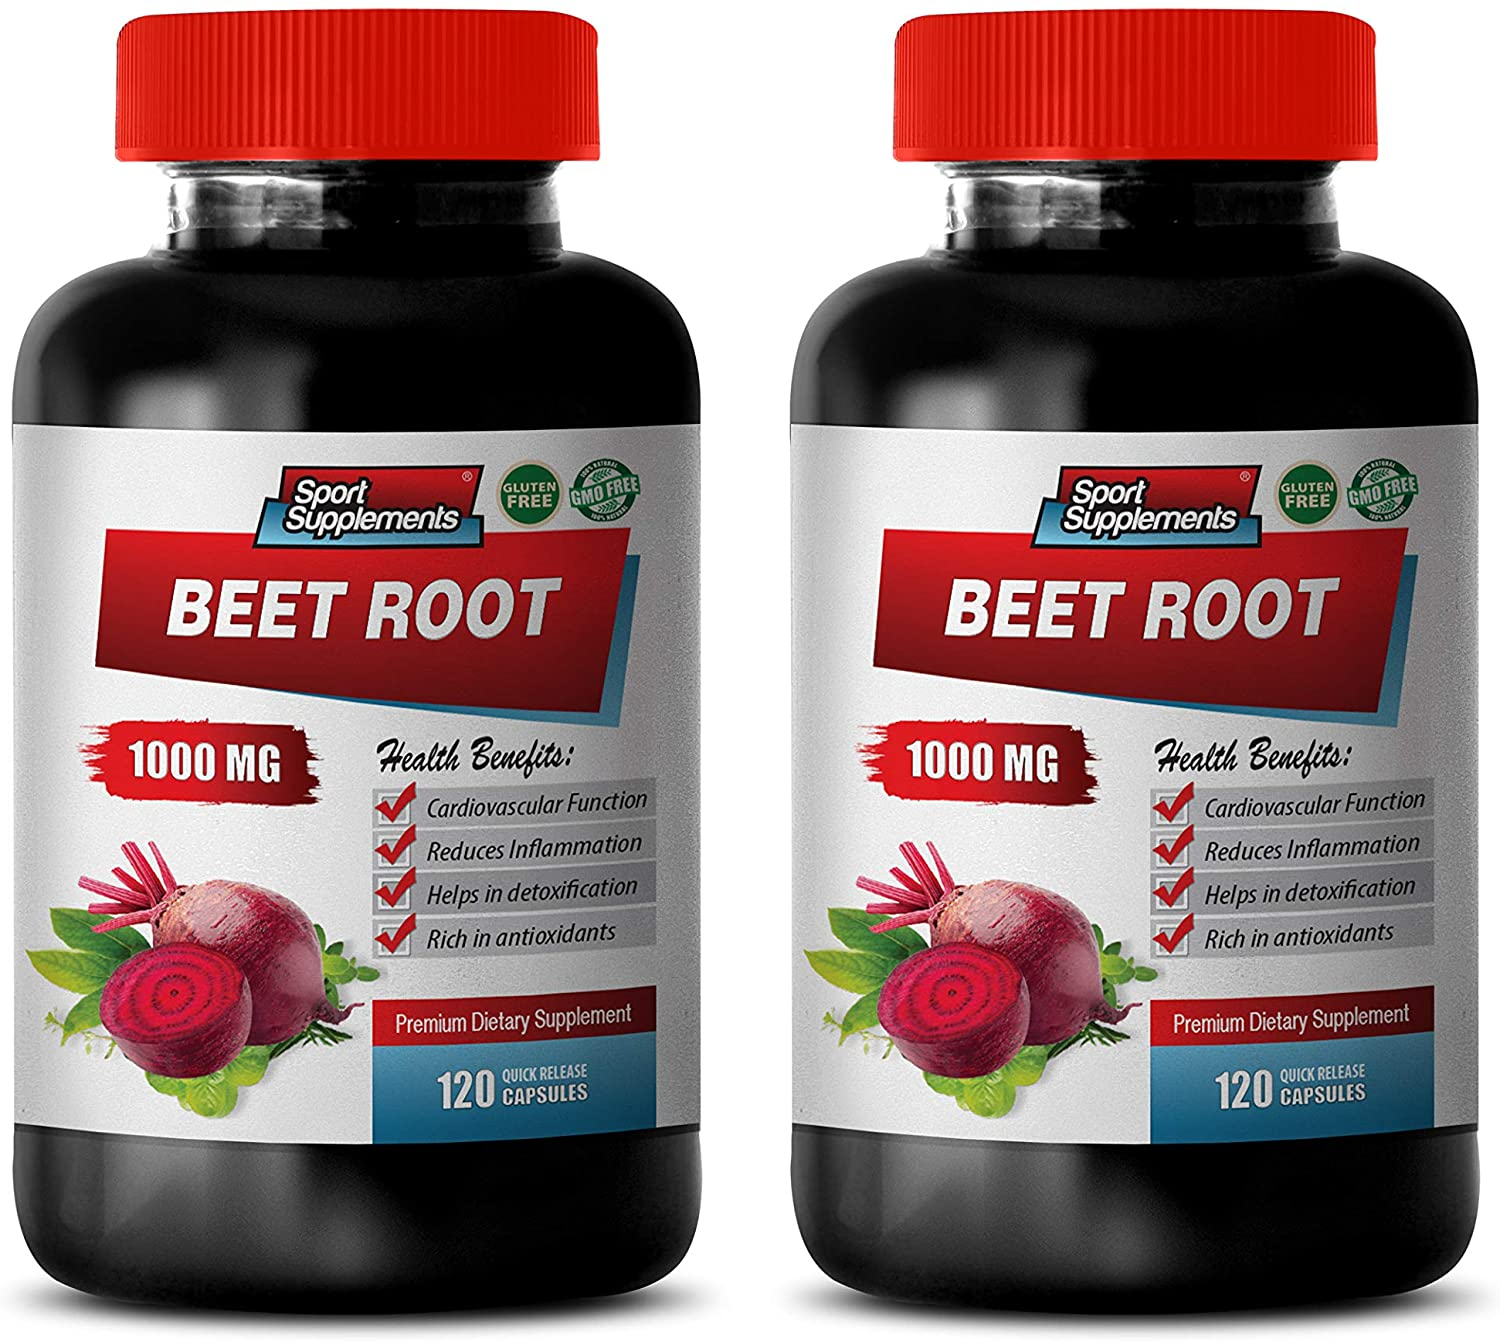 Immune System Booster for Women - Beet Root 1000MG - Best ANTIOXIDANTS - Vitamins and Minerals - Natural - Beet Root Organic Capsules - 2 Bottles (240 Capsules)